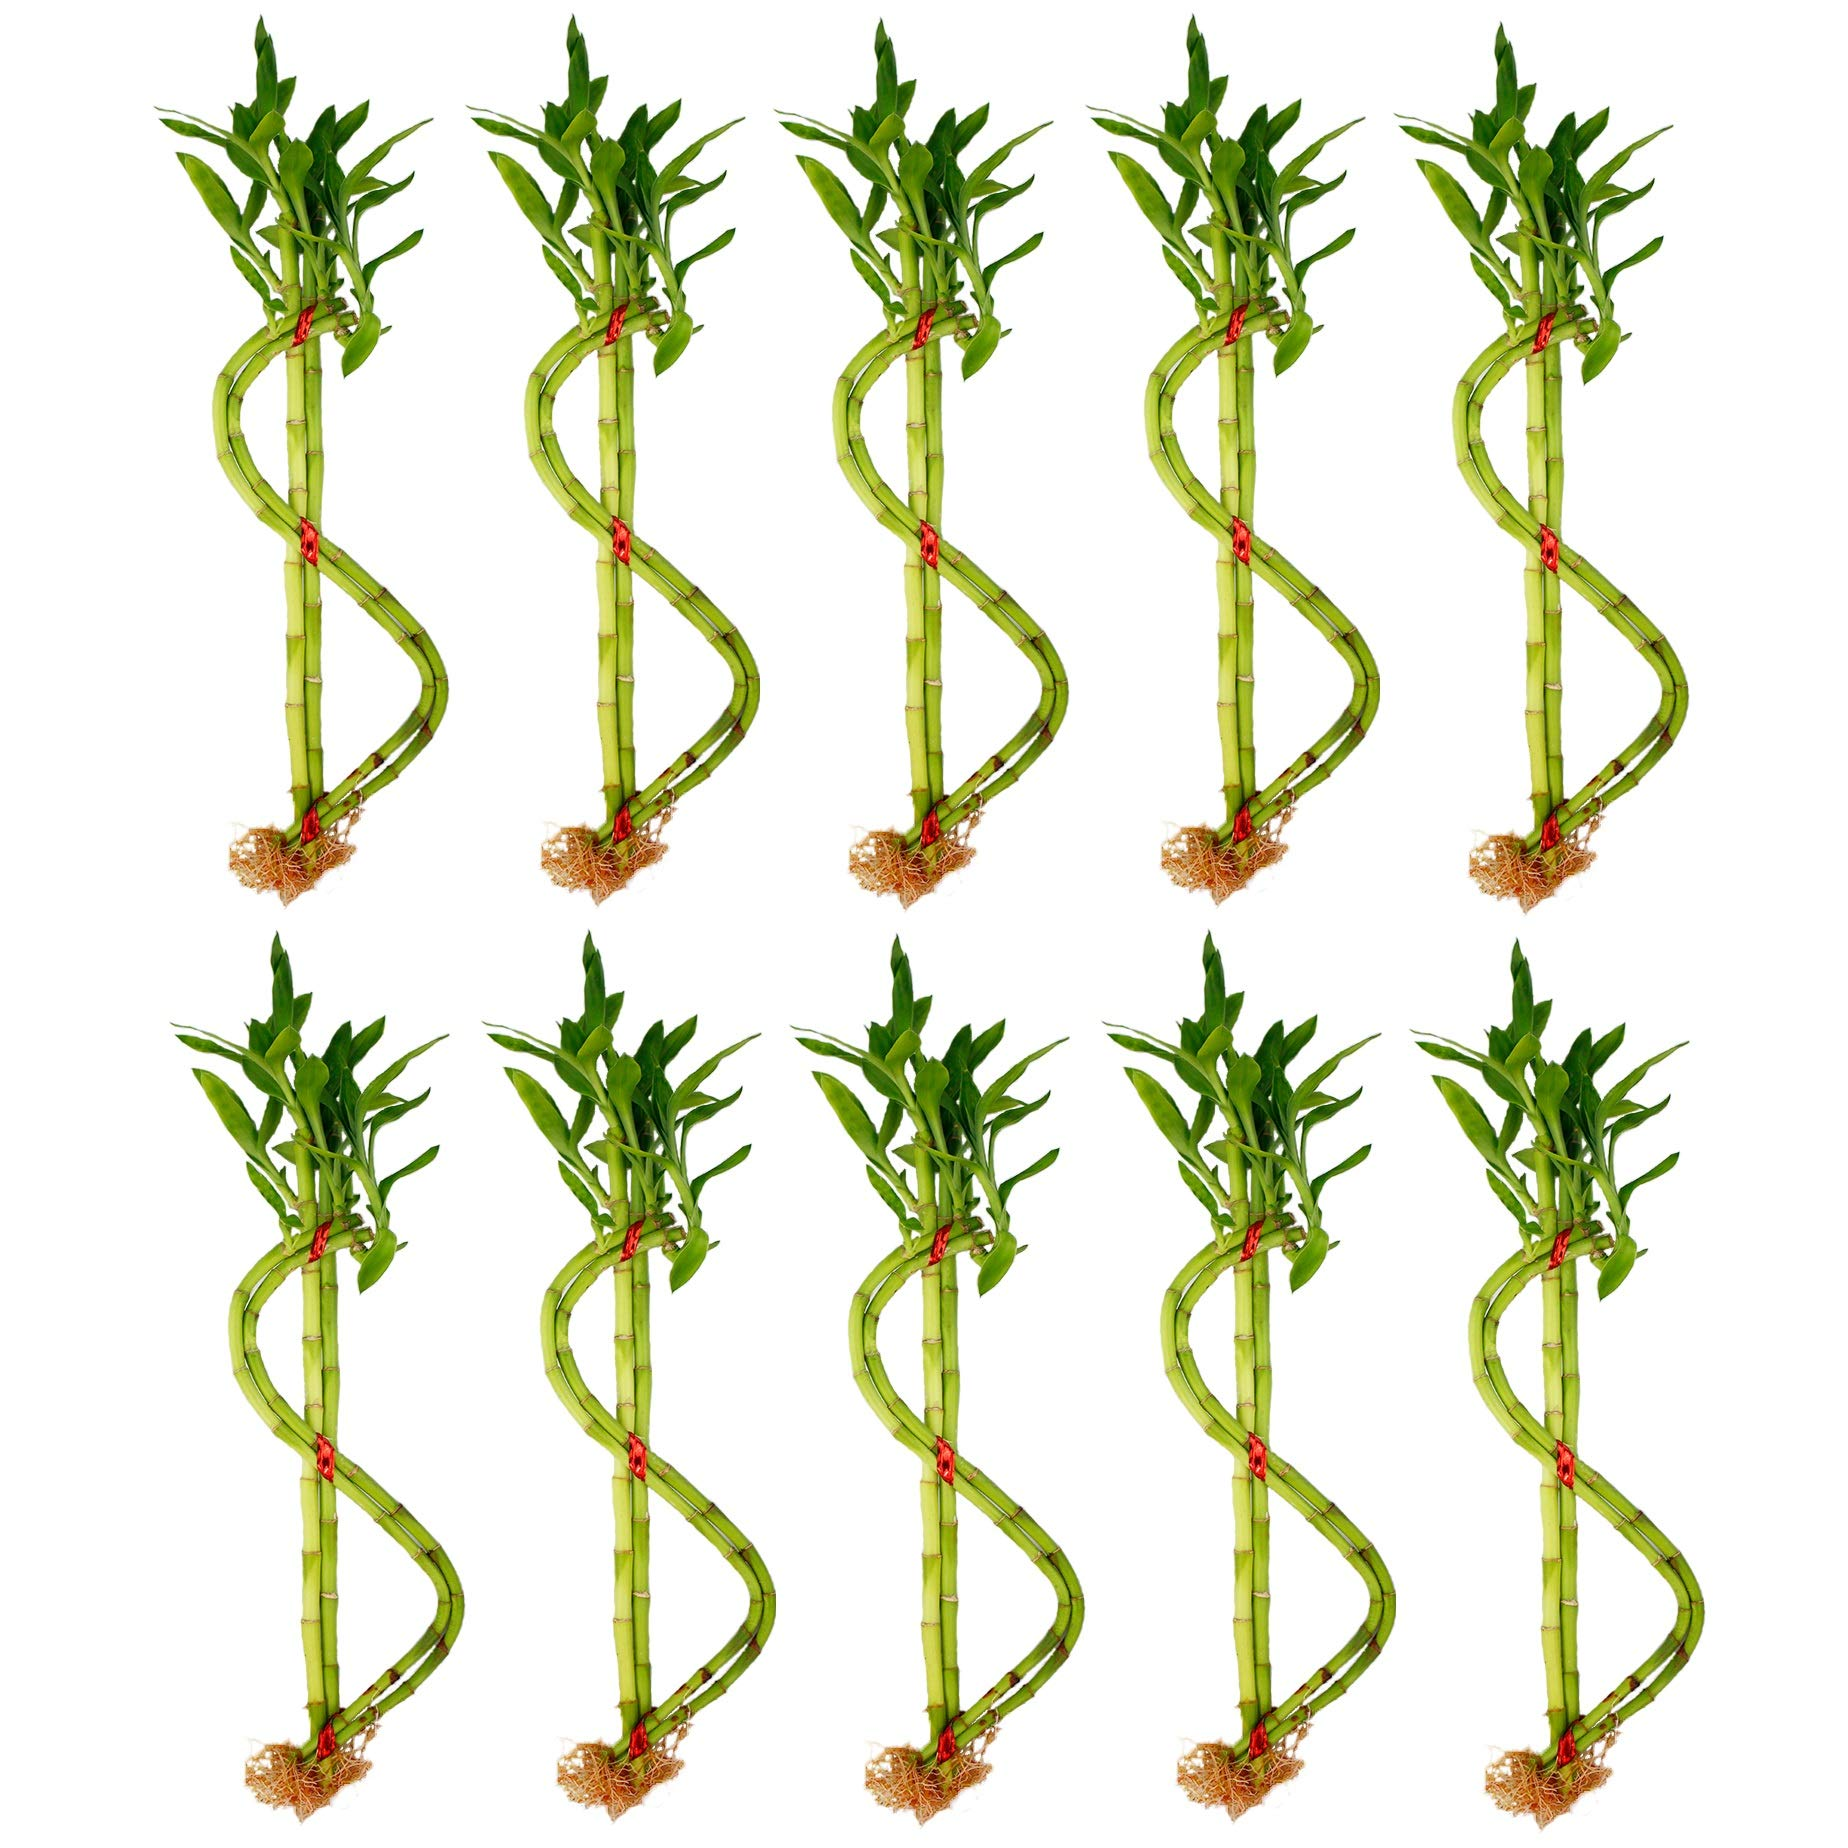 NW Wholesaler - Live Lucky Bamboo Money Sign House Plant - Lucky Money Plant (10)